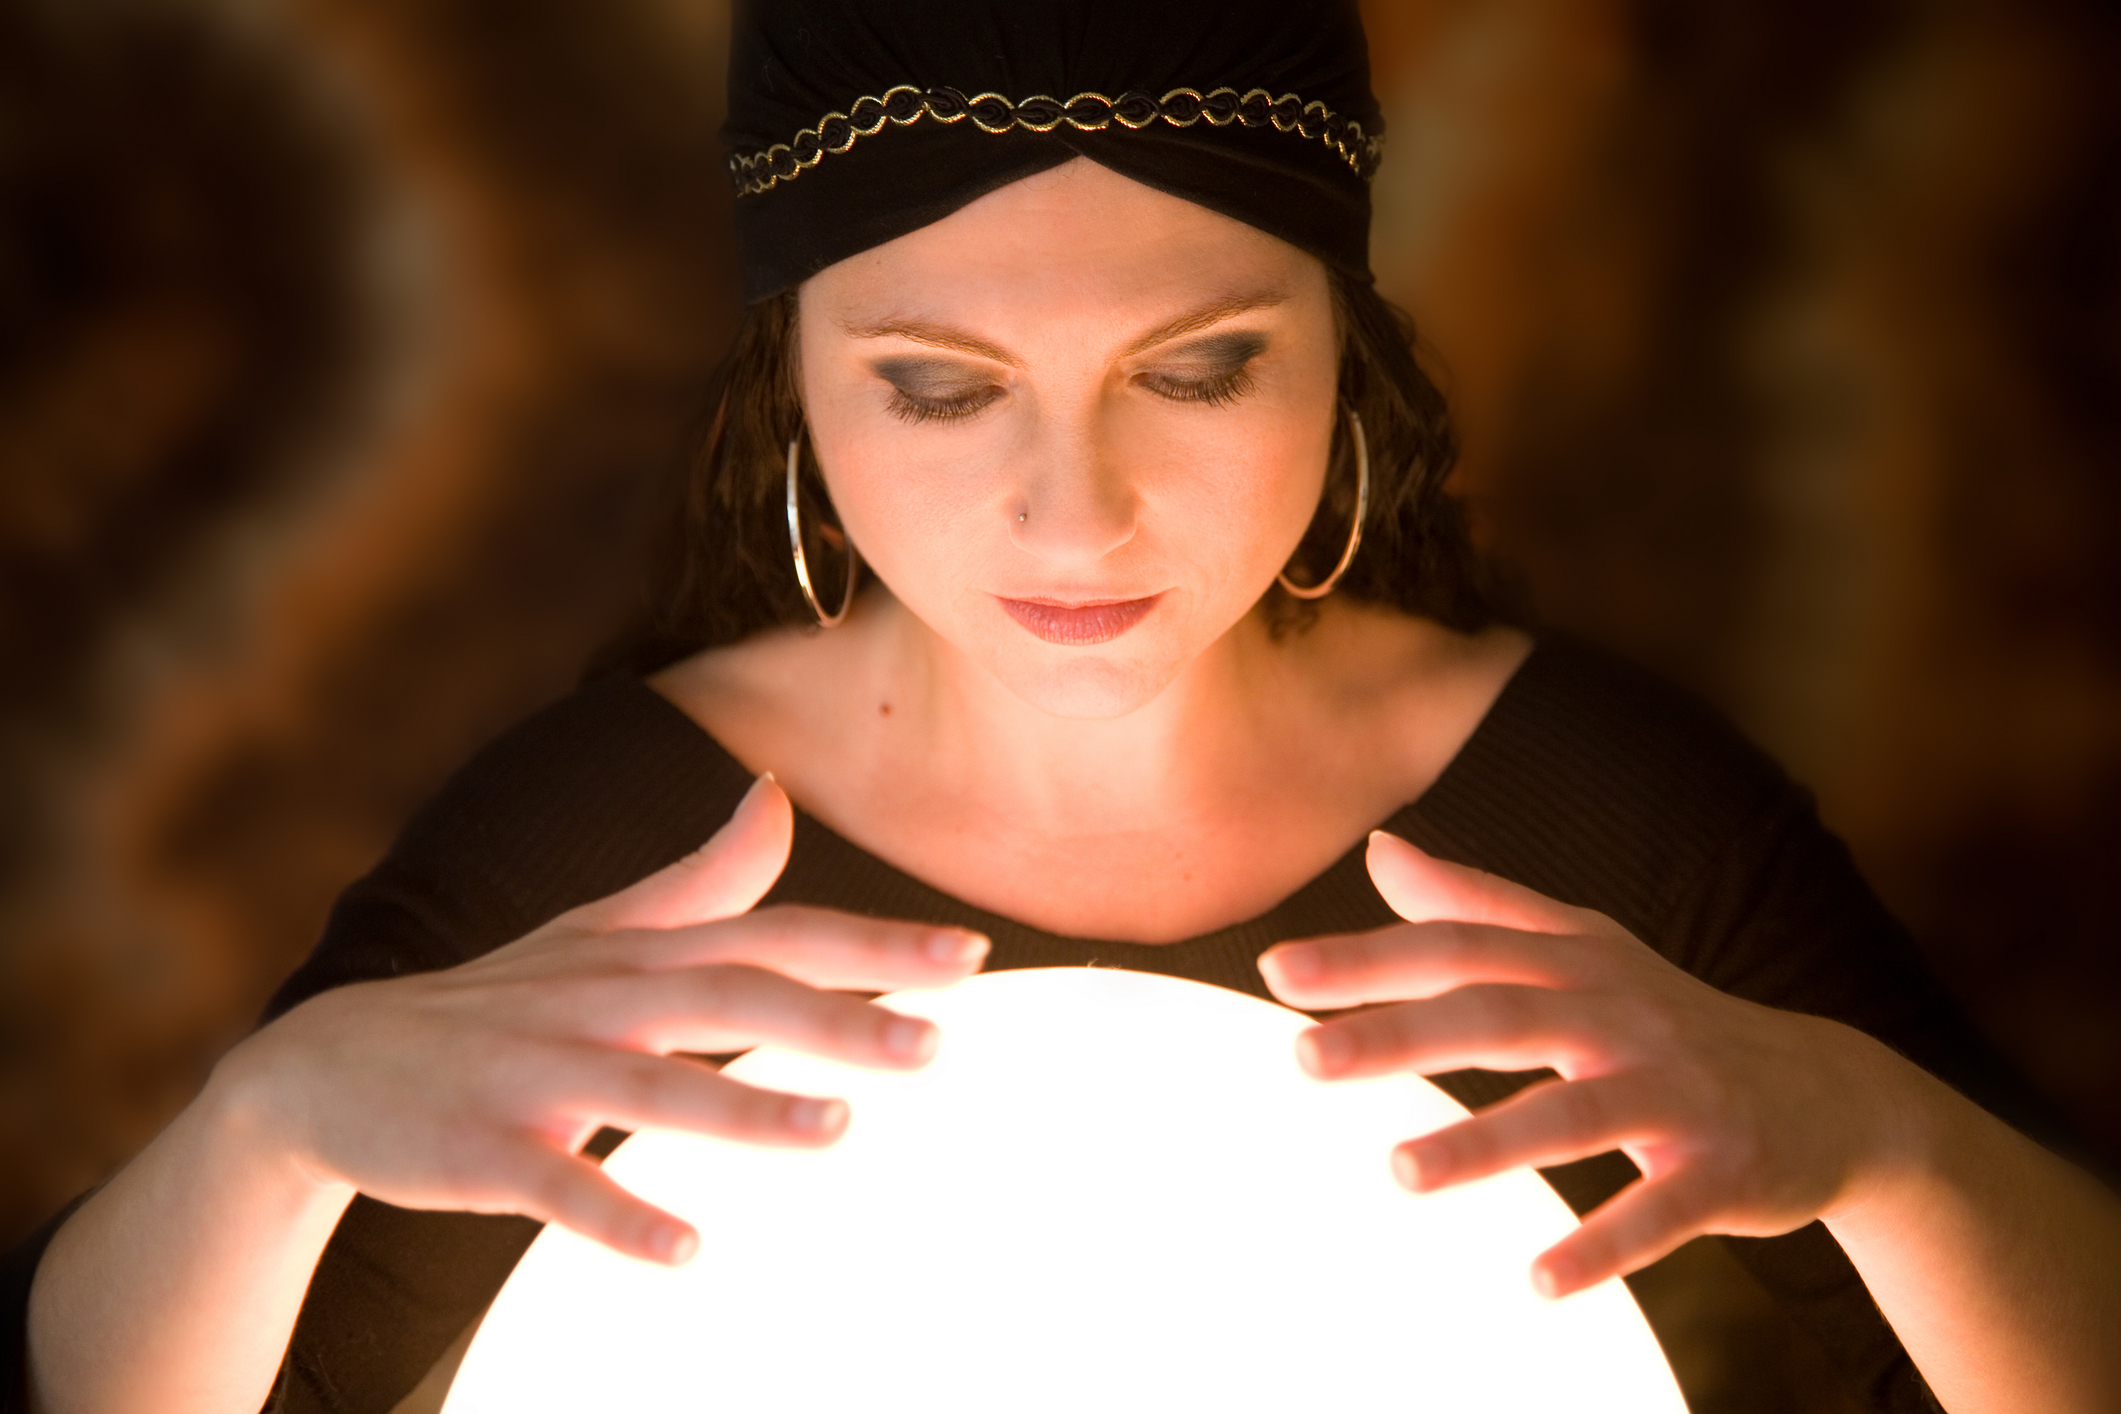 Occult witch fortune teller crystal ball light glow women ... Crystal Ball Fortune Teller